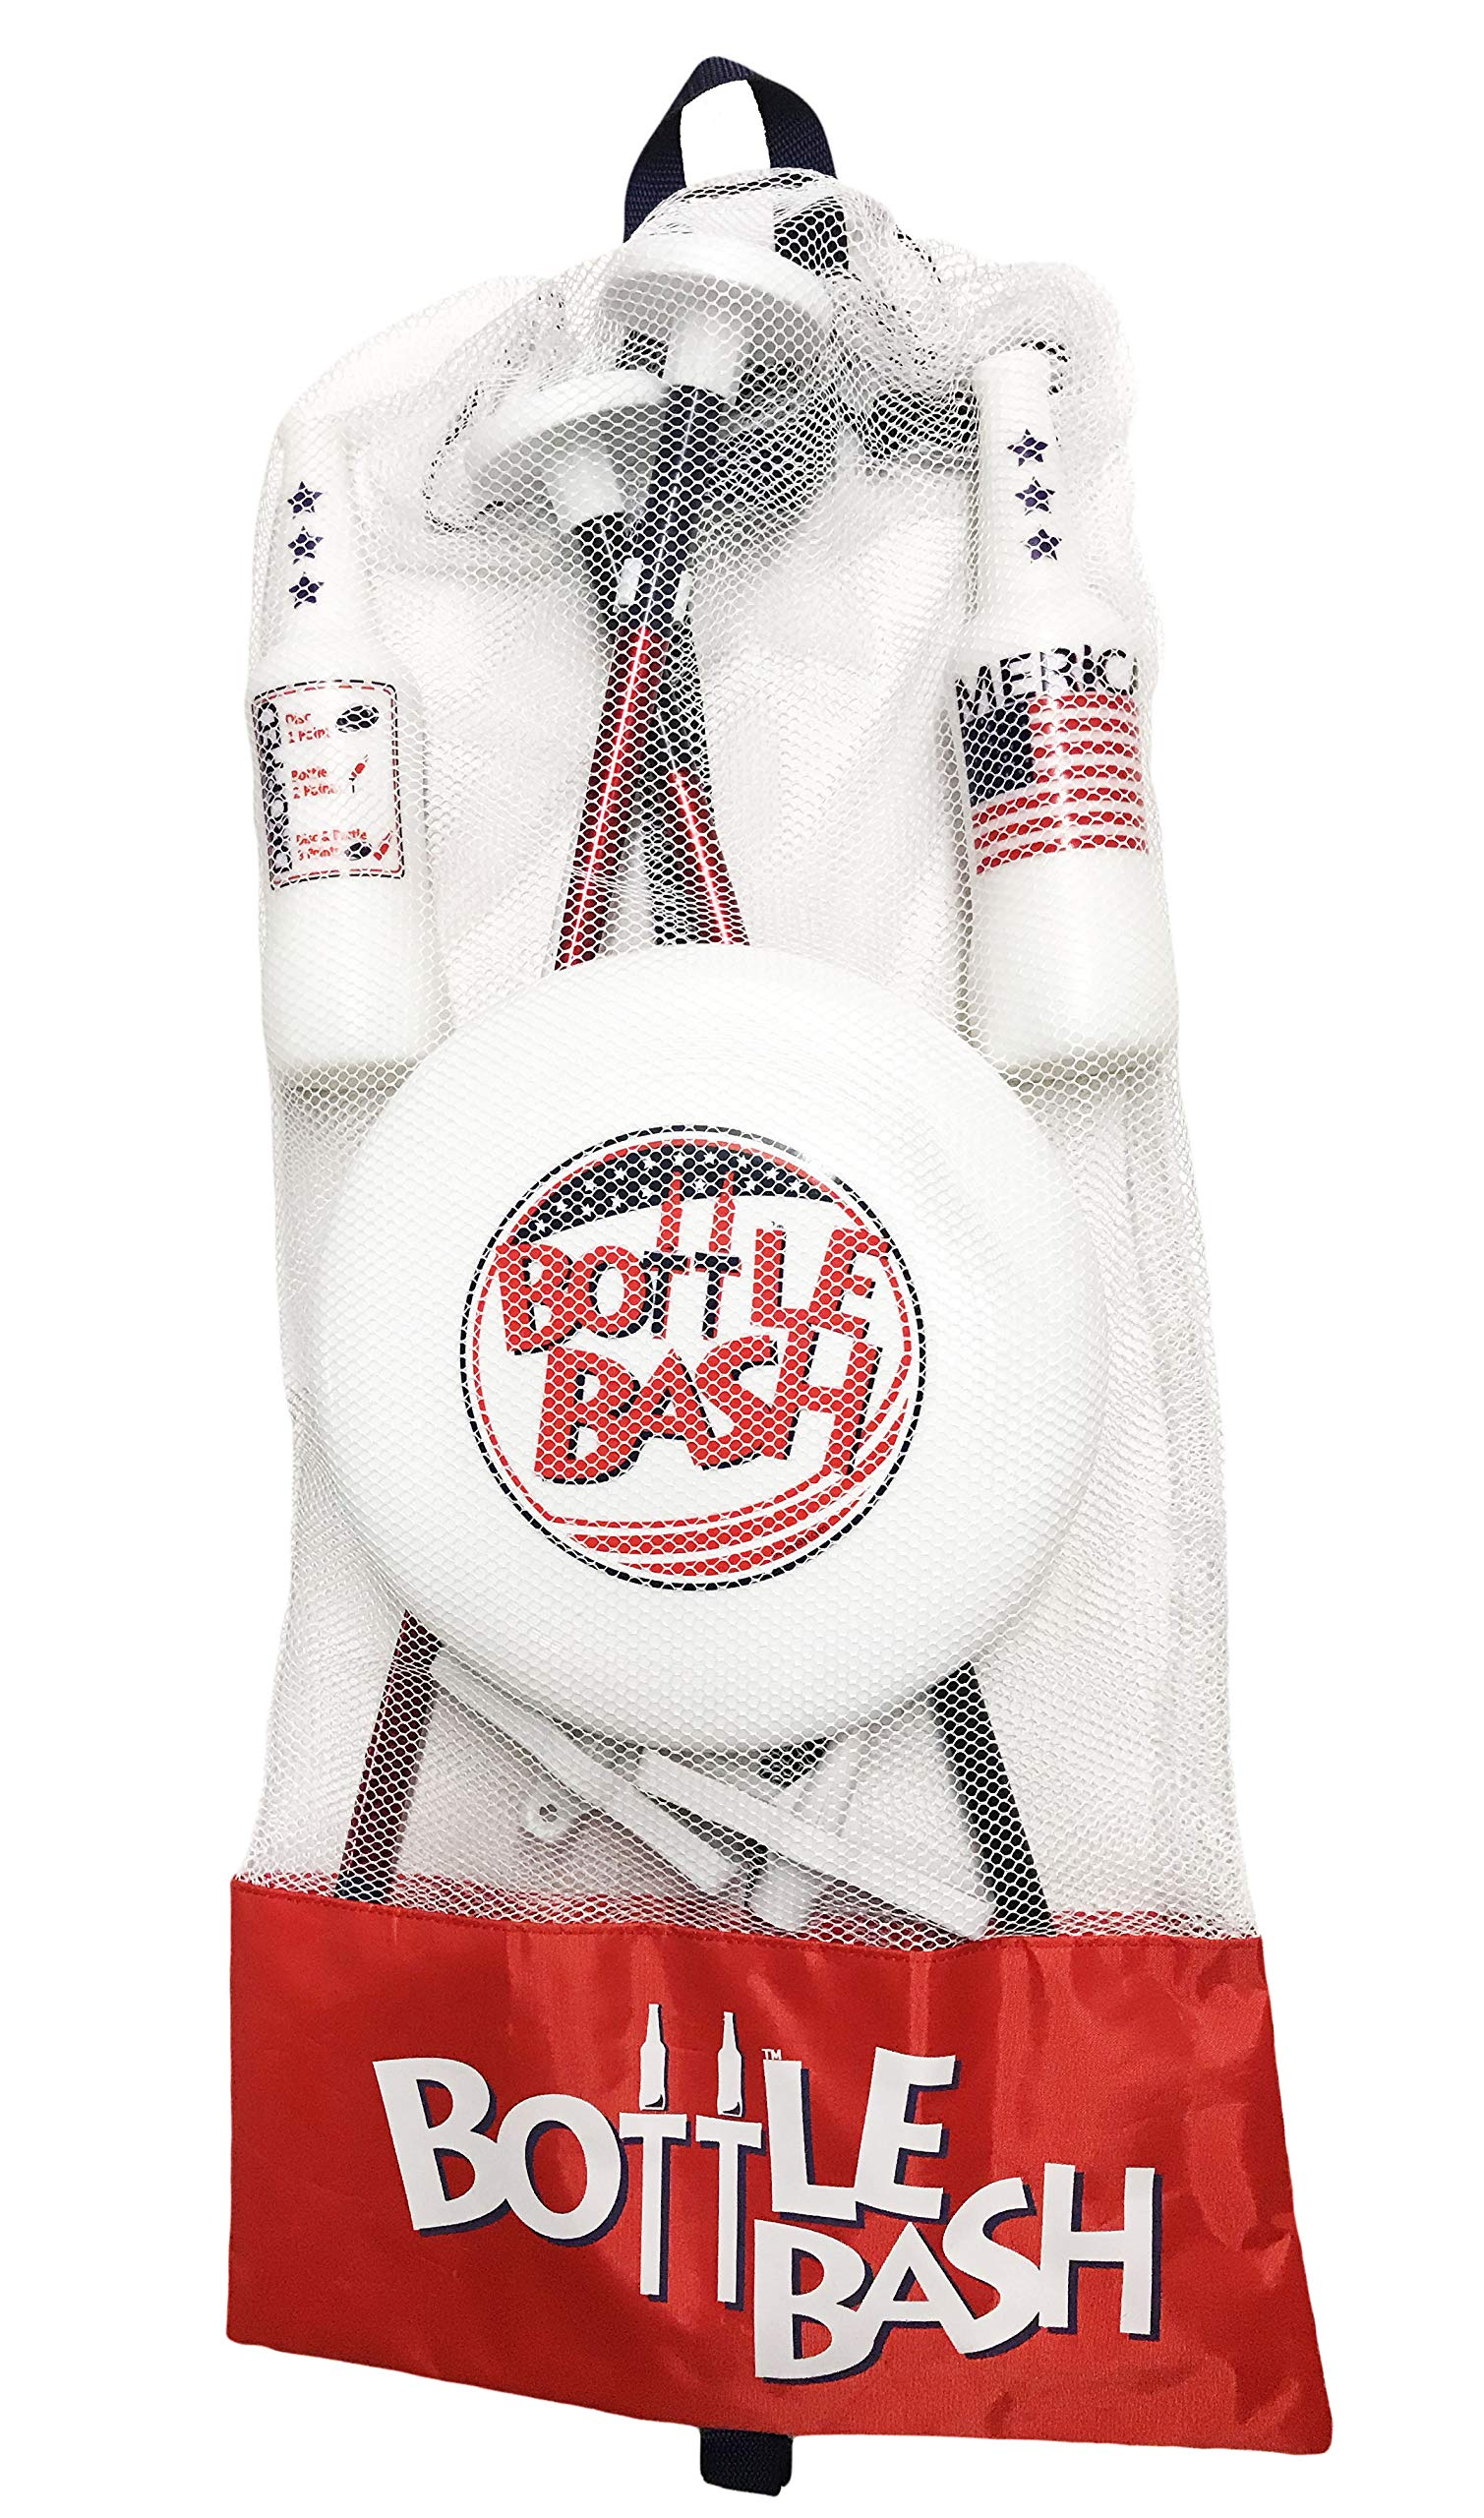 Bottle Bash USA Game Set with Soft Surface Spike (Polish Horseshoes, Beersbee) by Poleish Sports (Image #3)